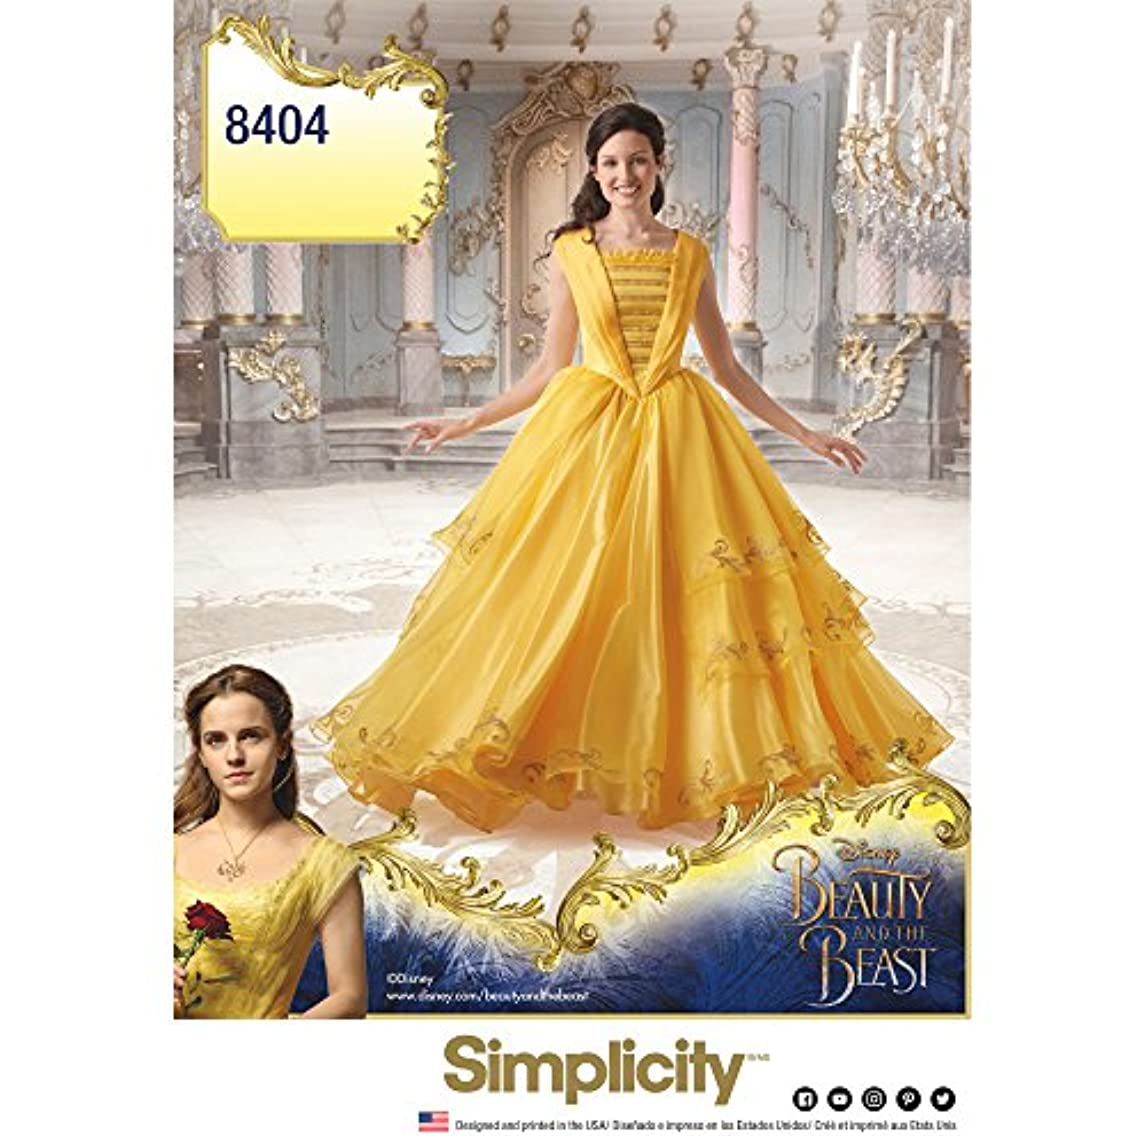 Simplicity Disney Beauty and the Beast Costume for Misses Art and Craft Sewing Template - R5 (14-22)